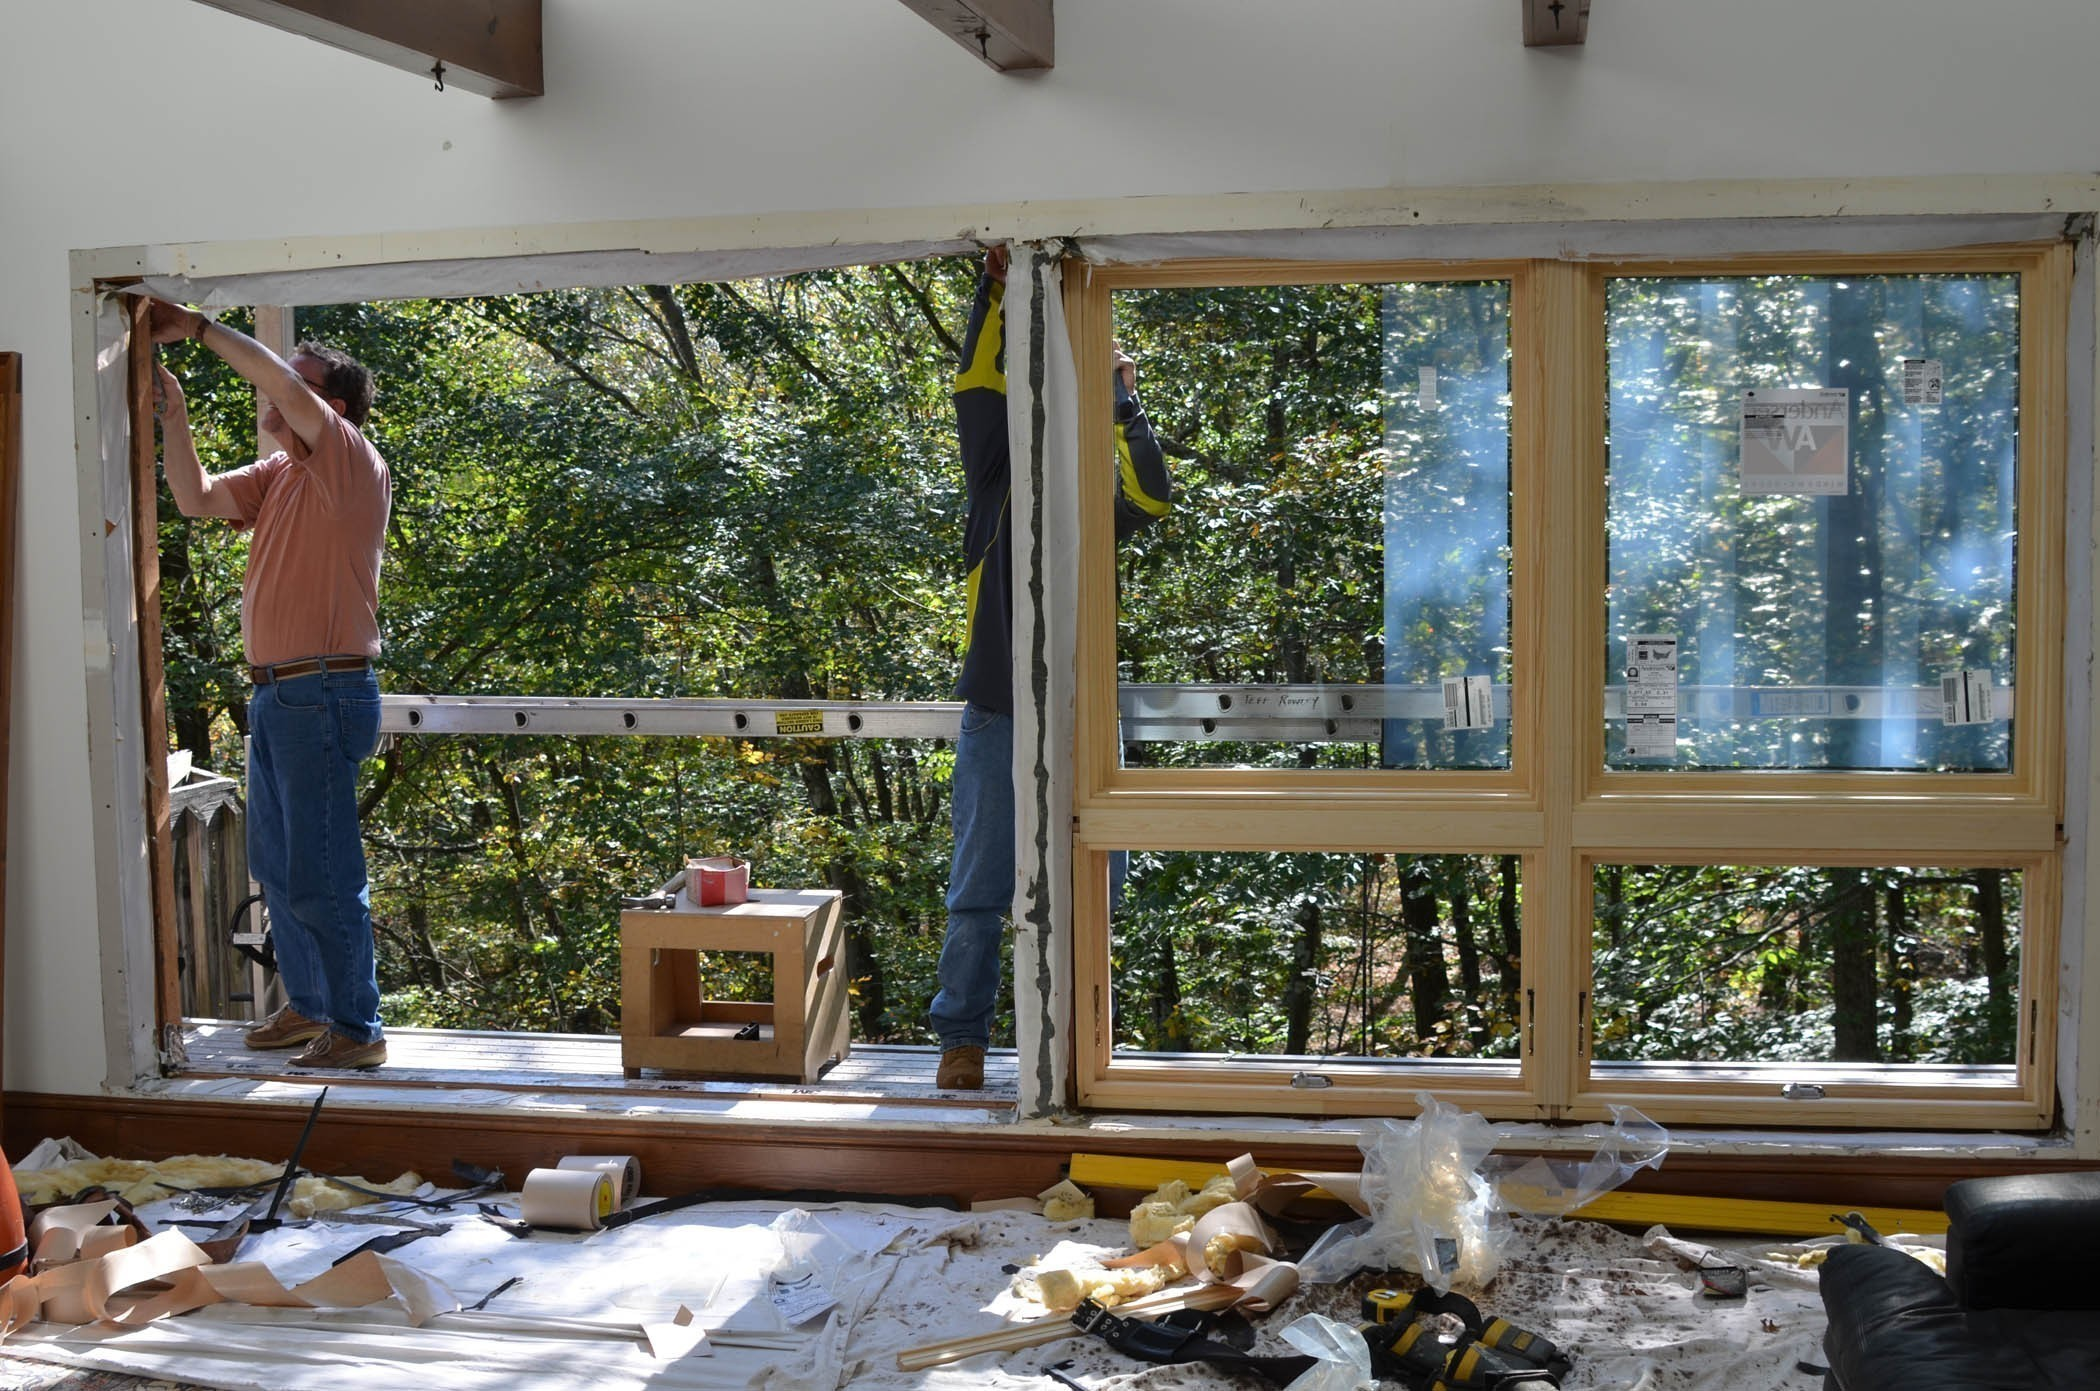 2018 Replacement Windows Cost Guide | Average Cost of ...